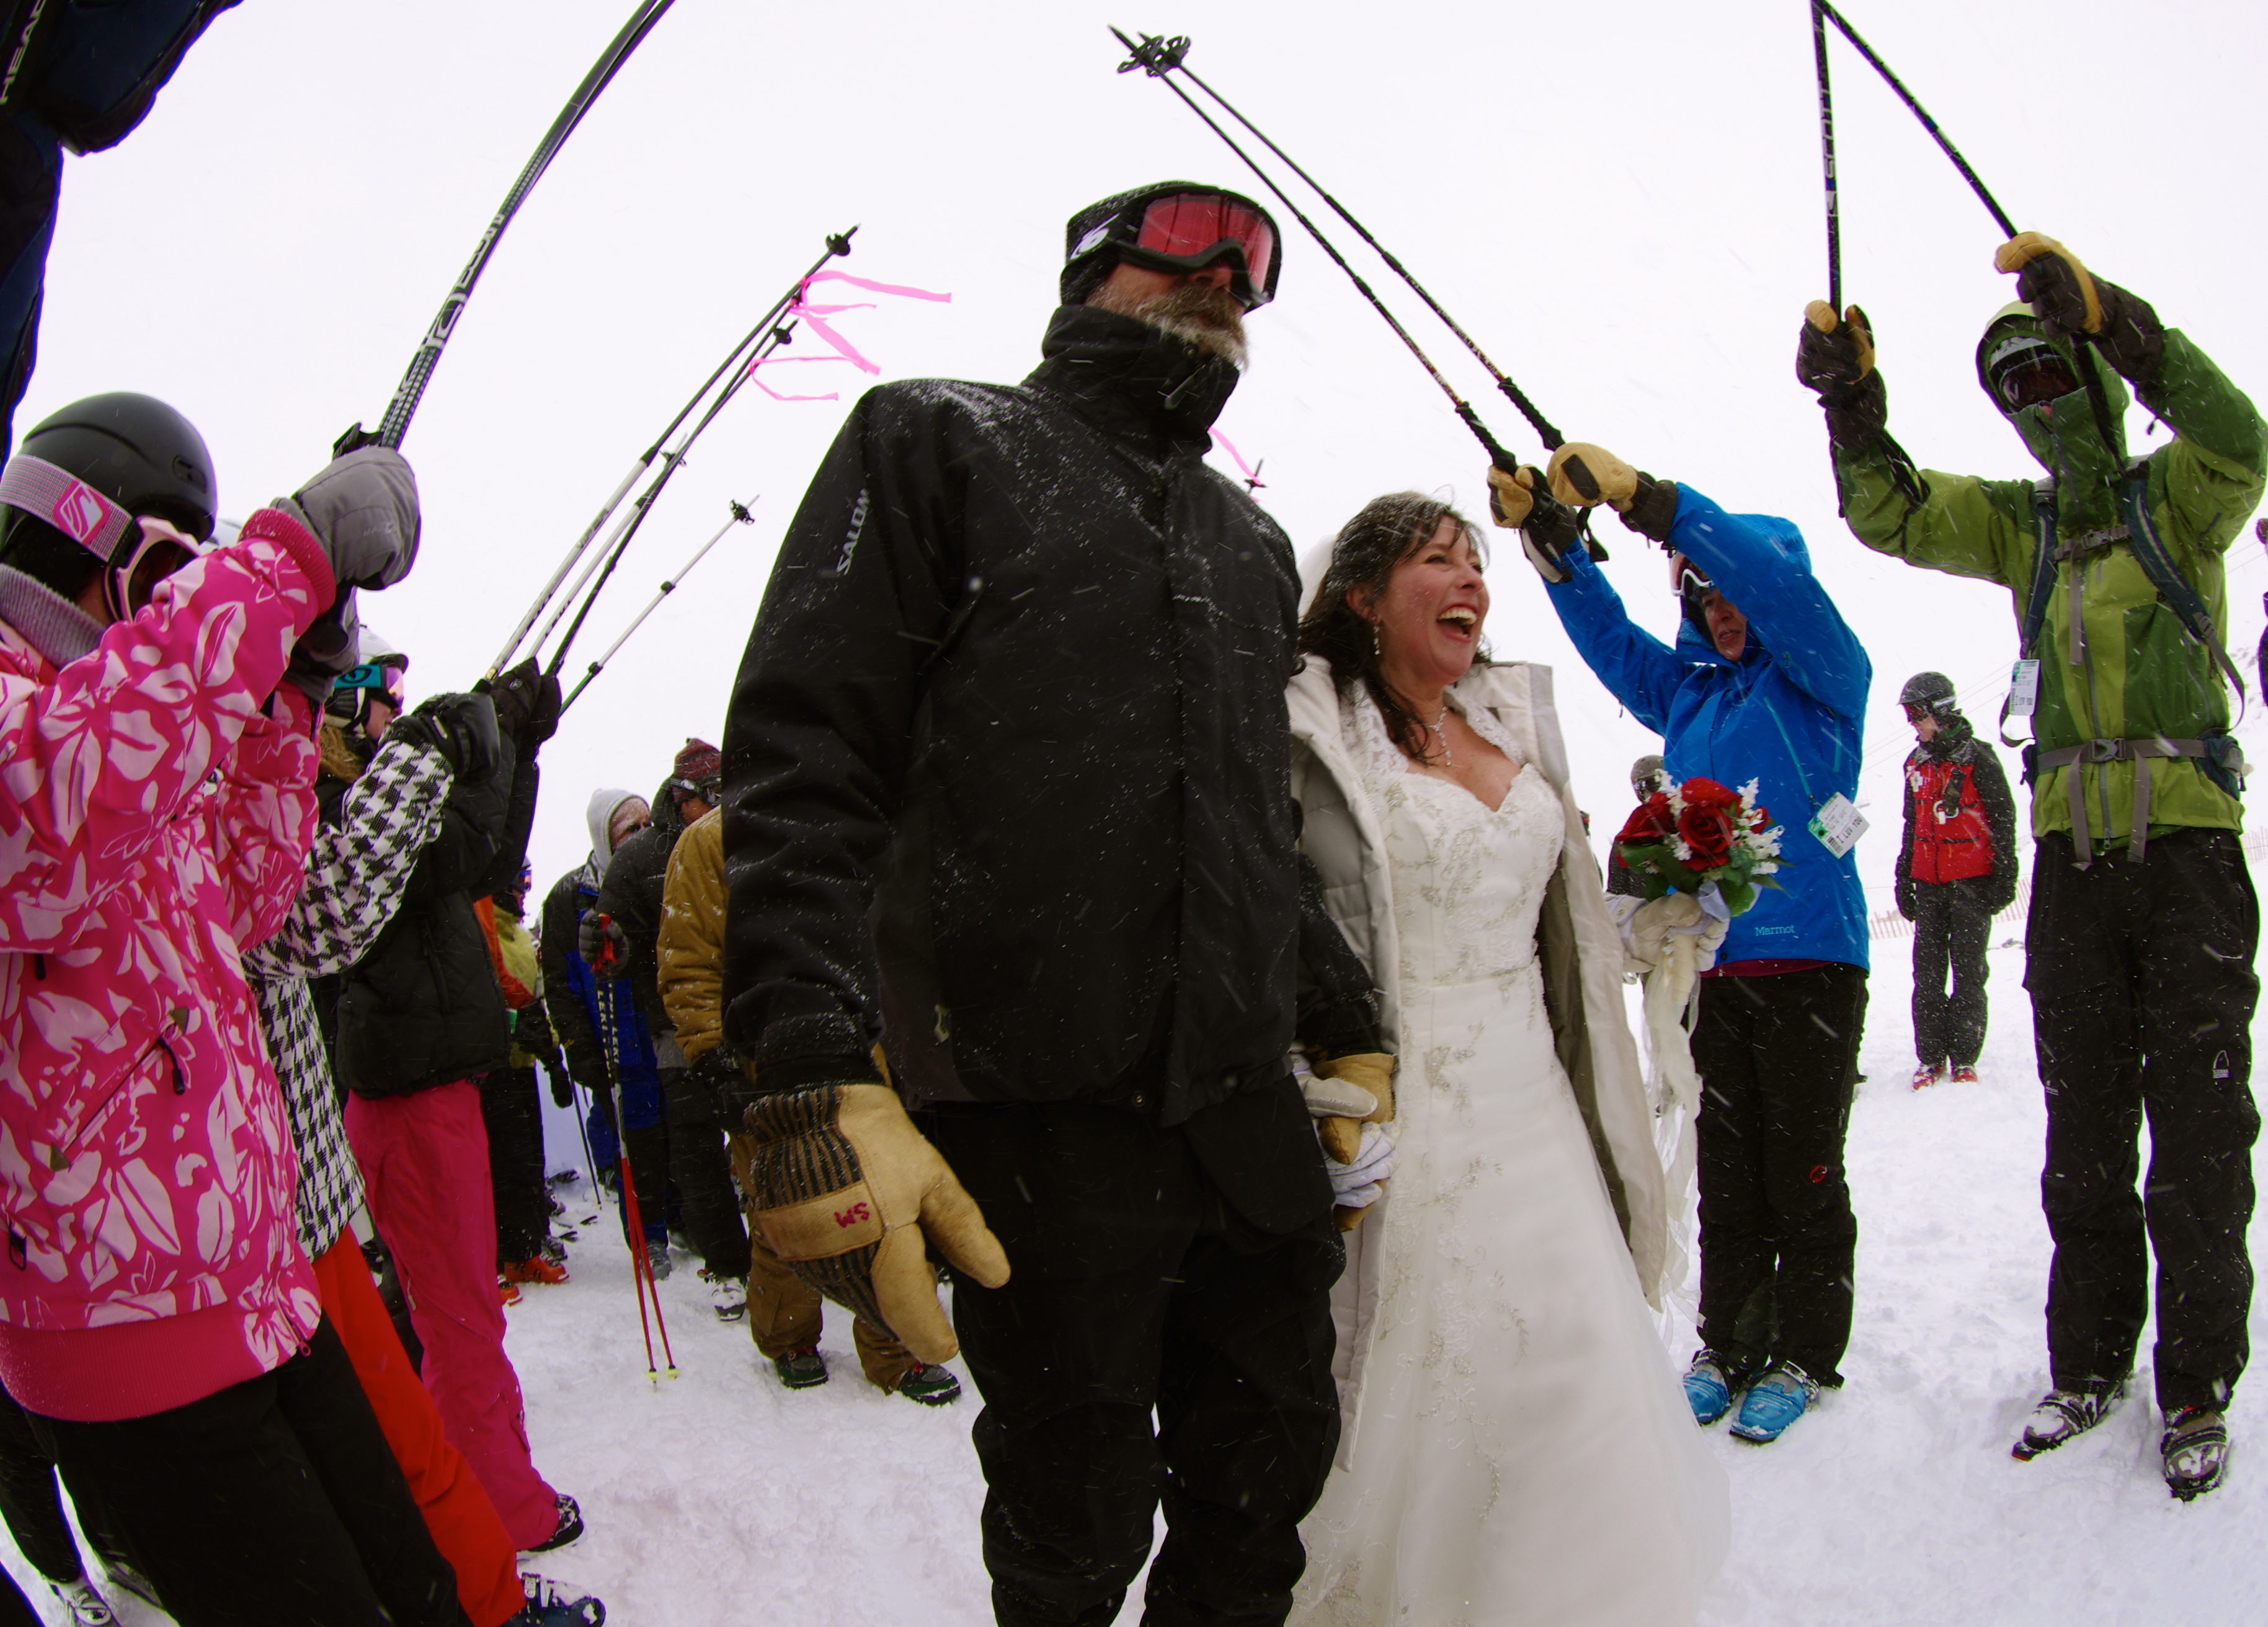 Loveland Ski Area on Valentines Day – Marry Me at 12,050